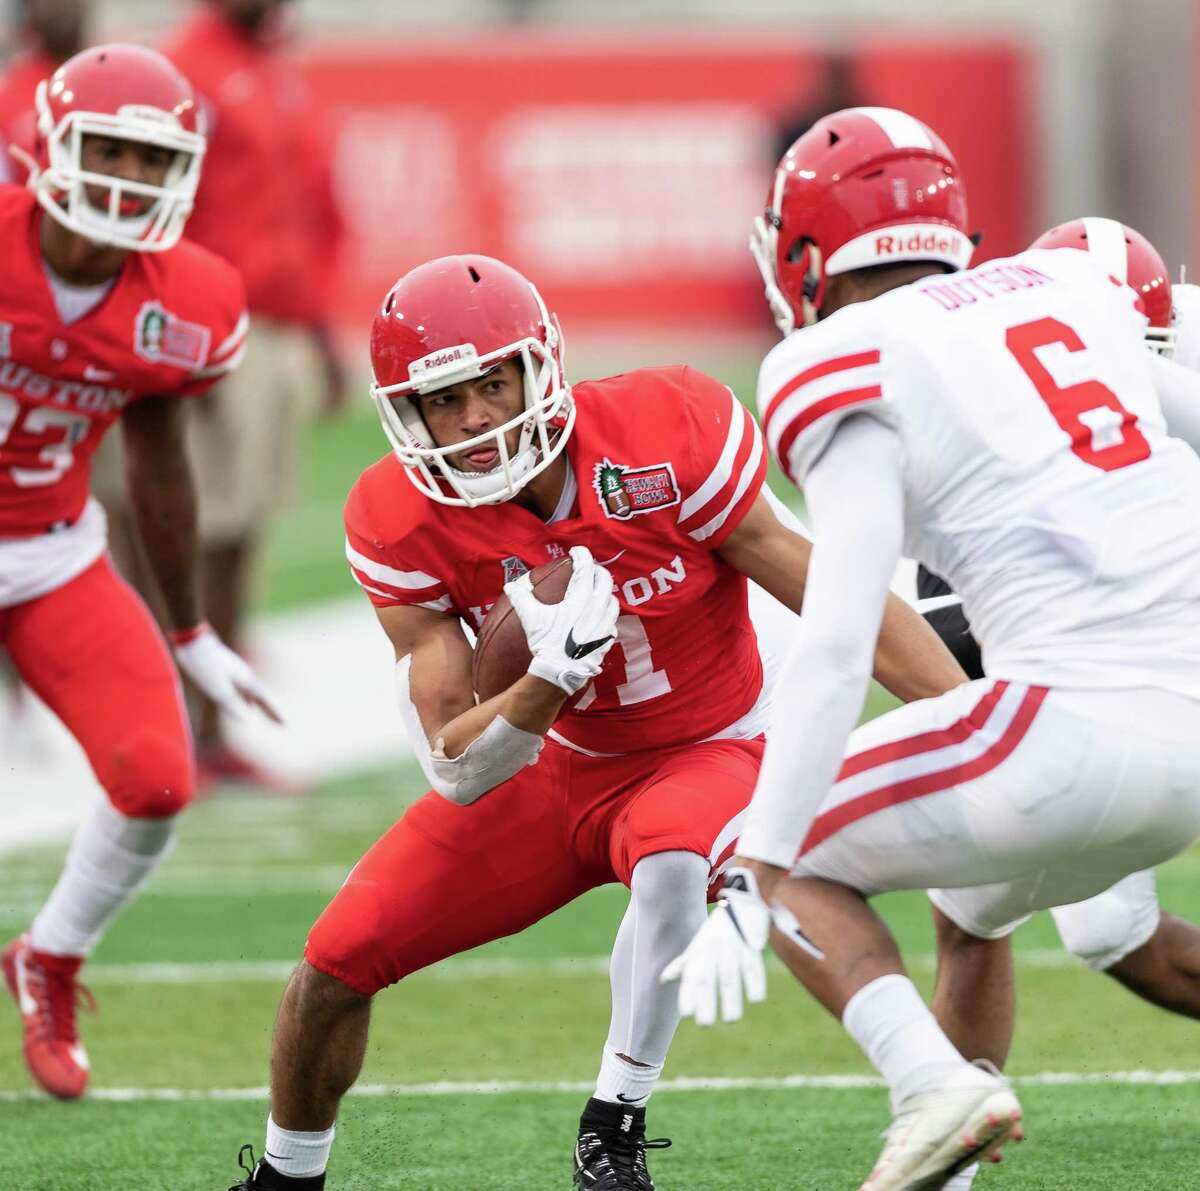 UH wide receiver Tre'von Bradley, center, represents a youth movement for coach Major Applewhite's new-look, downfield offensive attack.